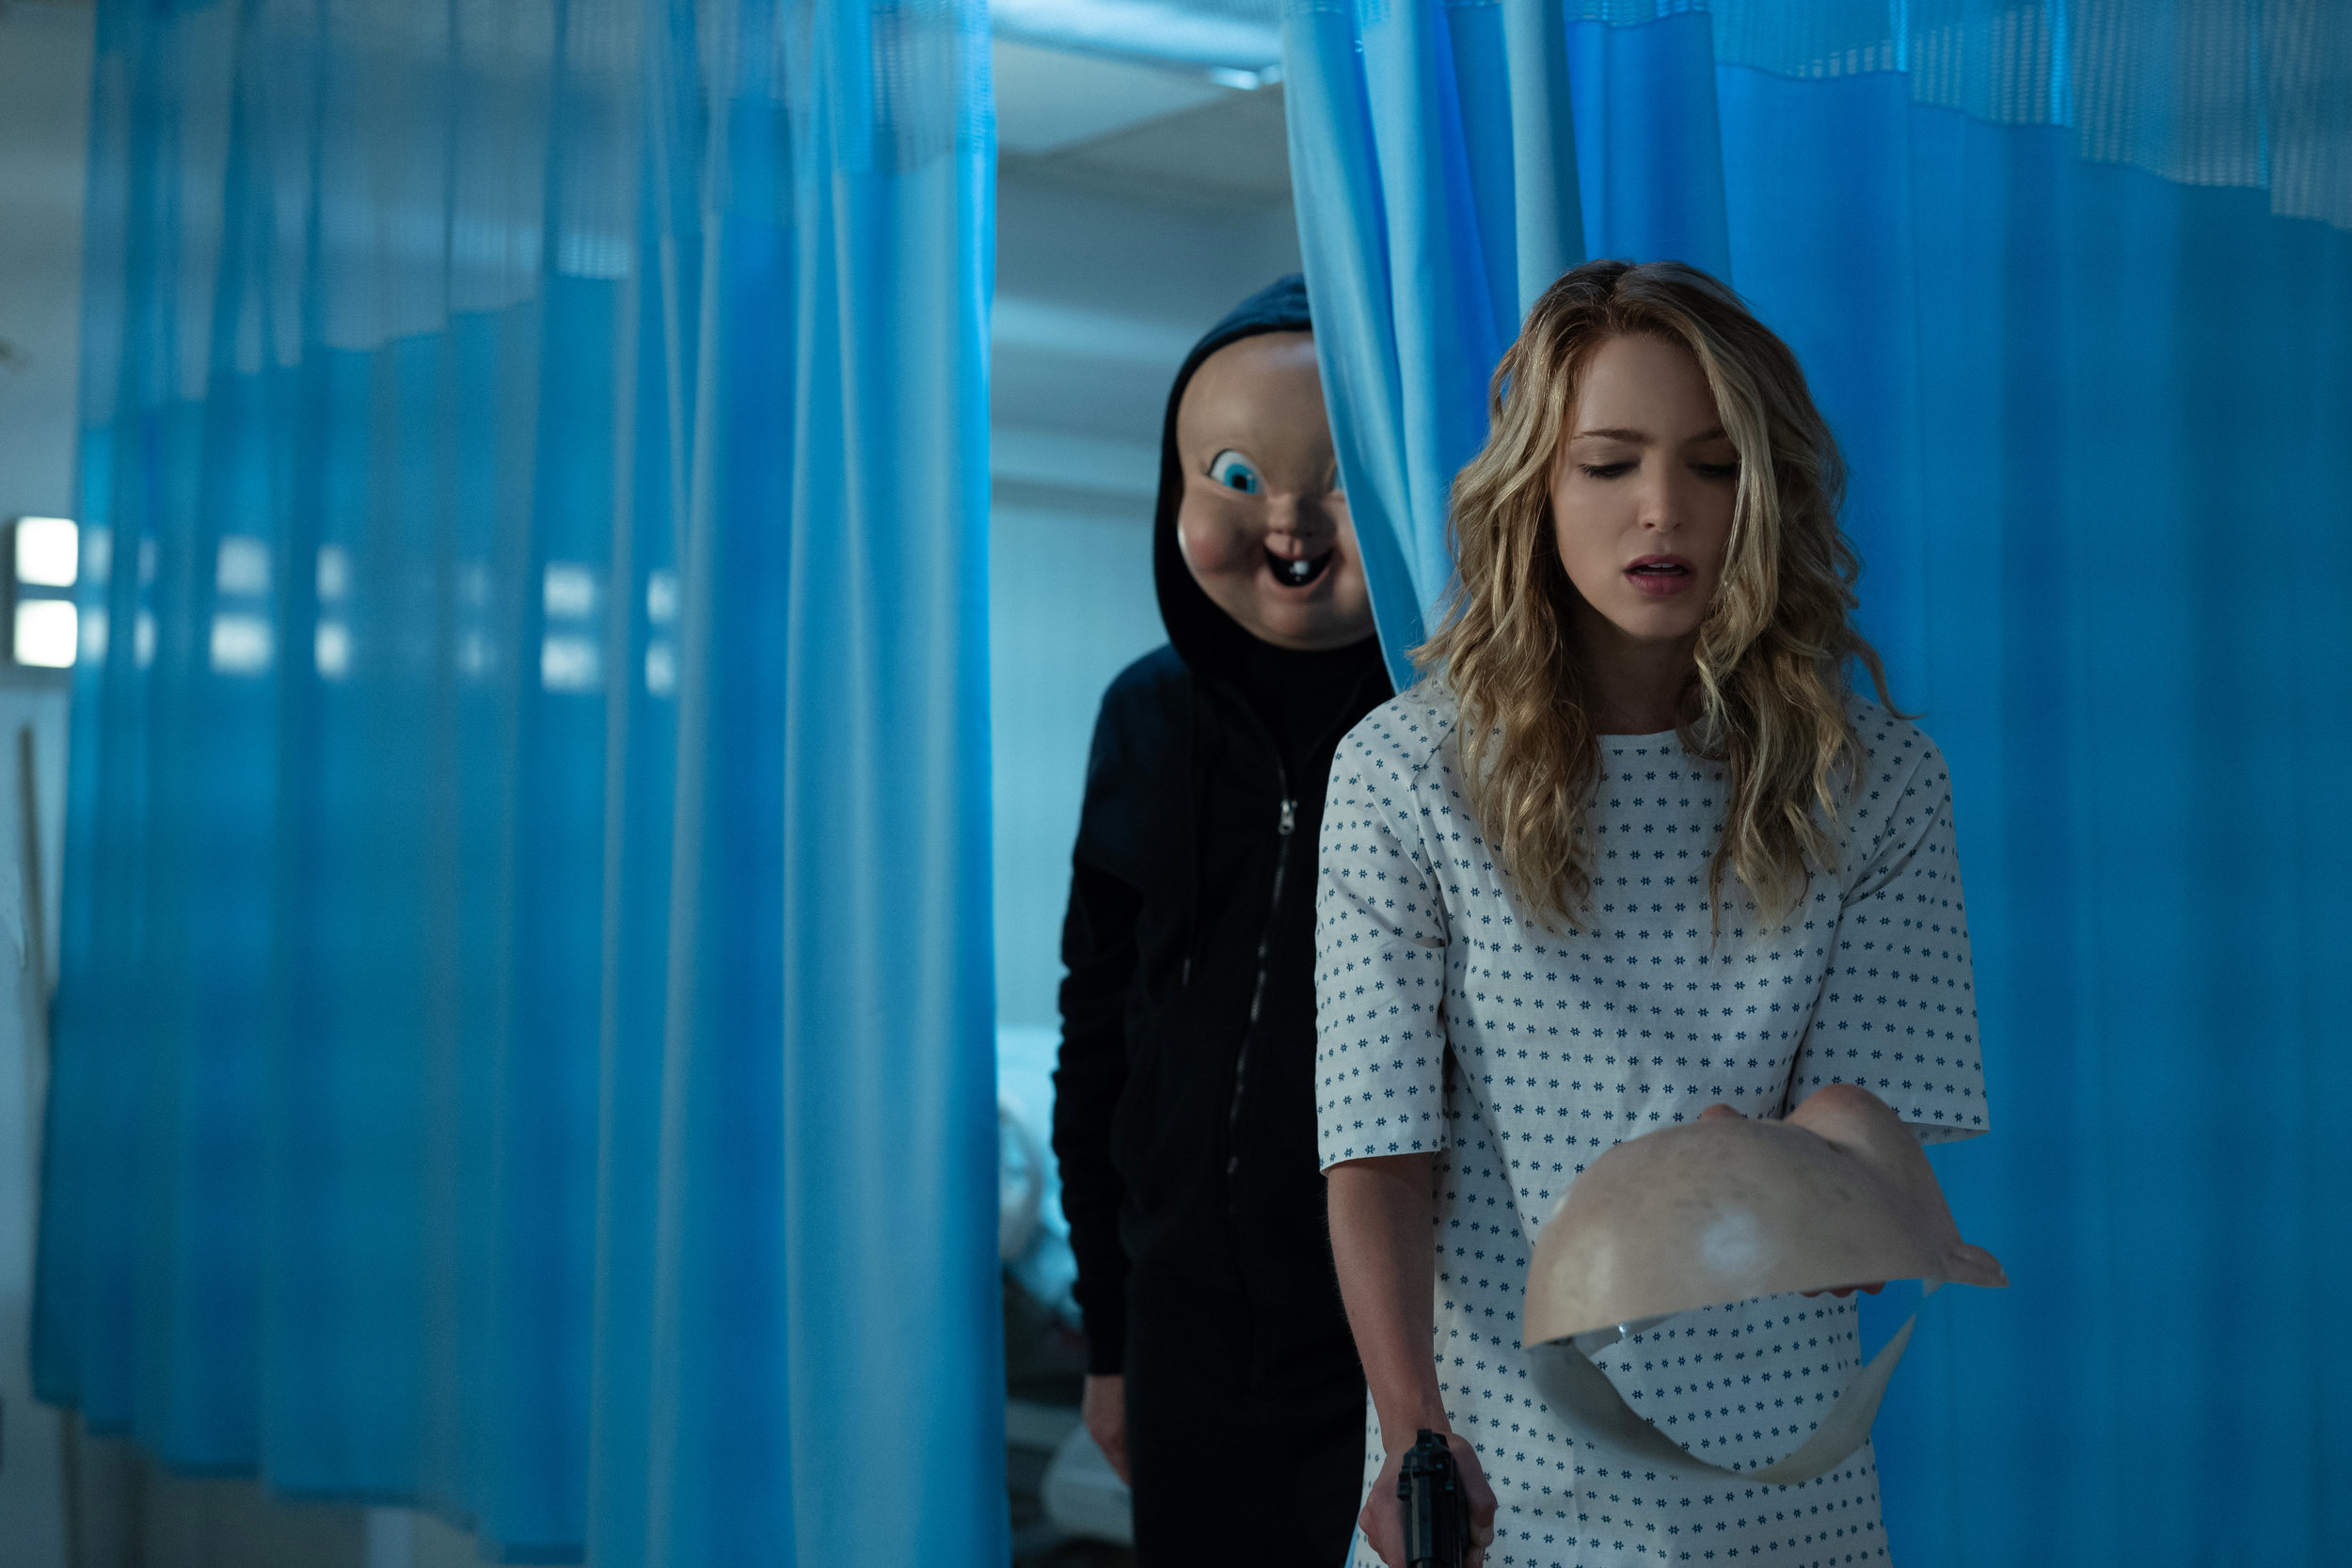 """College student Tree Gelbman (Jessica Rothe) again is pursued by the Baby Face Killer, in the horror sequel """"Happy Death Day 2U."""" (Photo by Michele K. Short, courtesy Universal Pictures)"""